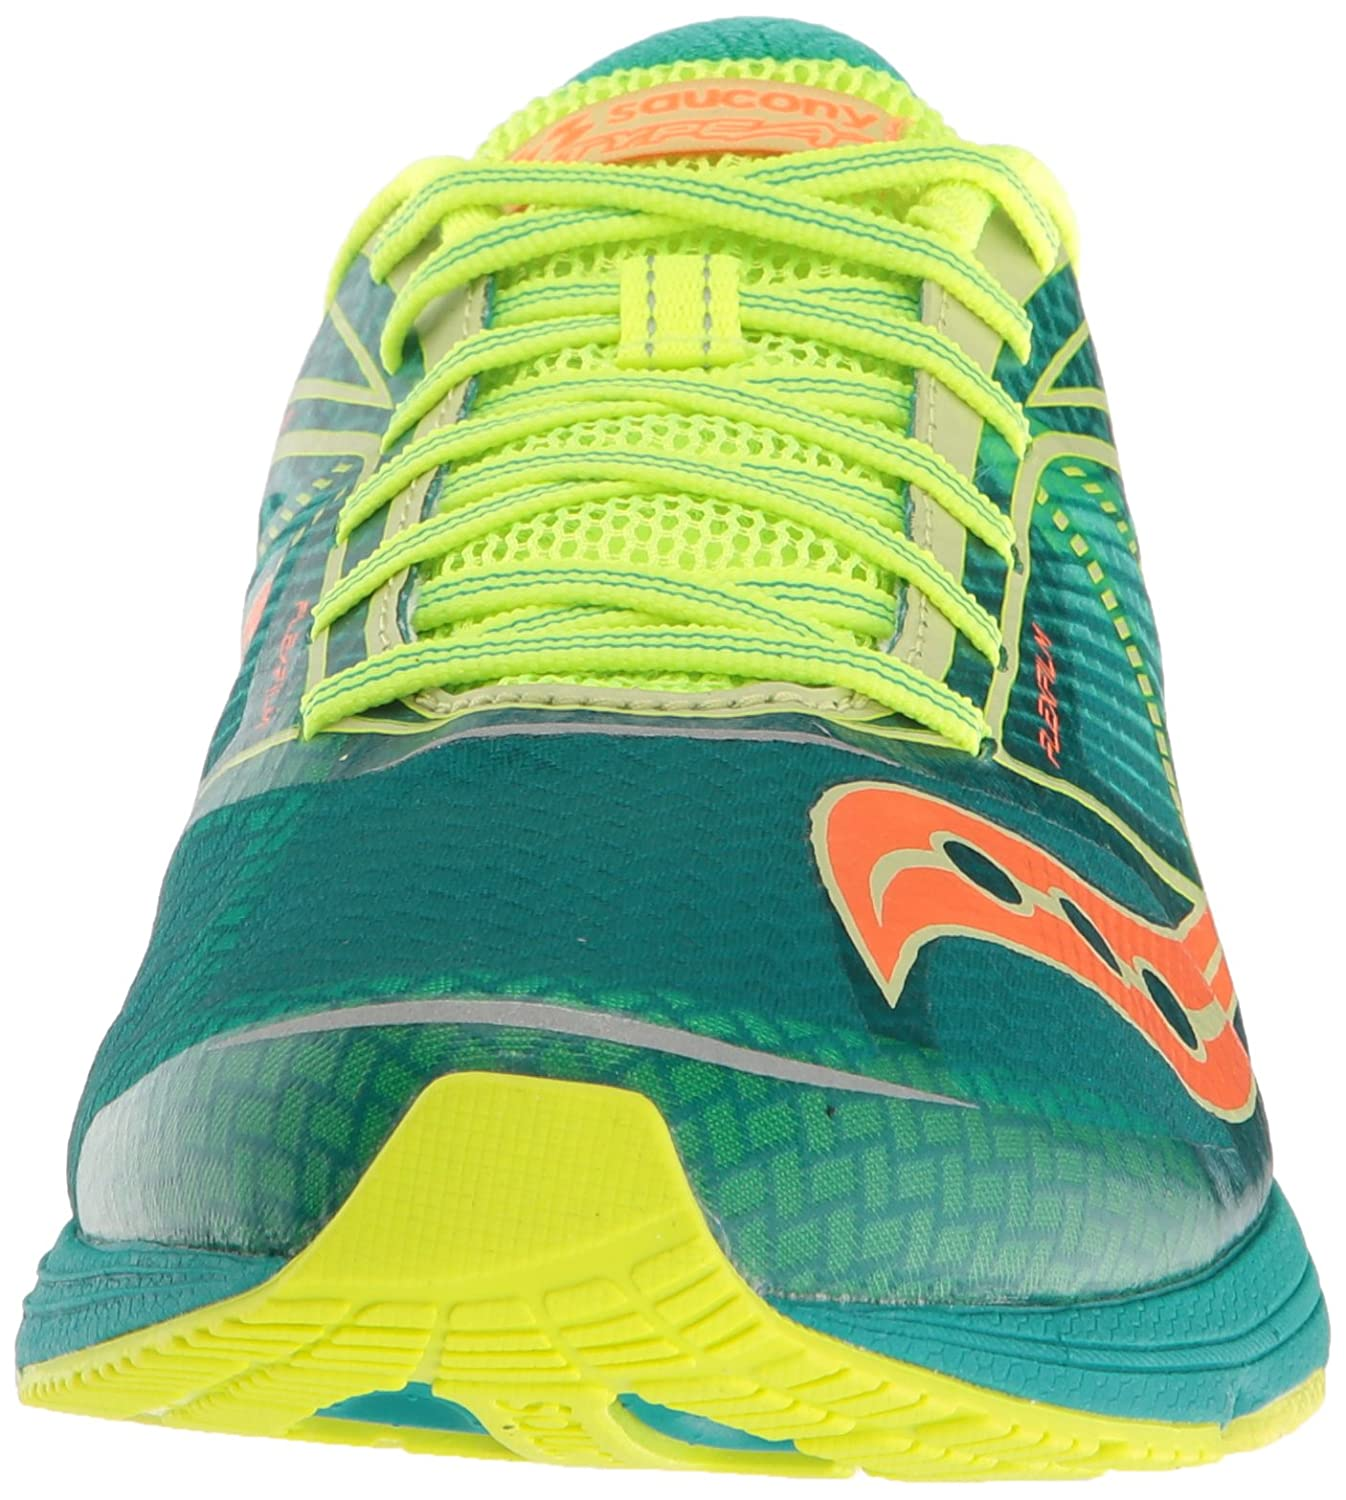 Saucony Type A6 Running Shoes AW16 Green | Citron 7.5 D(M